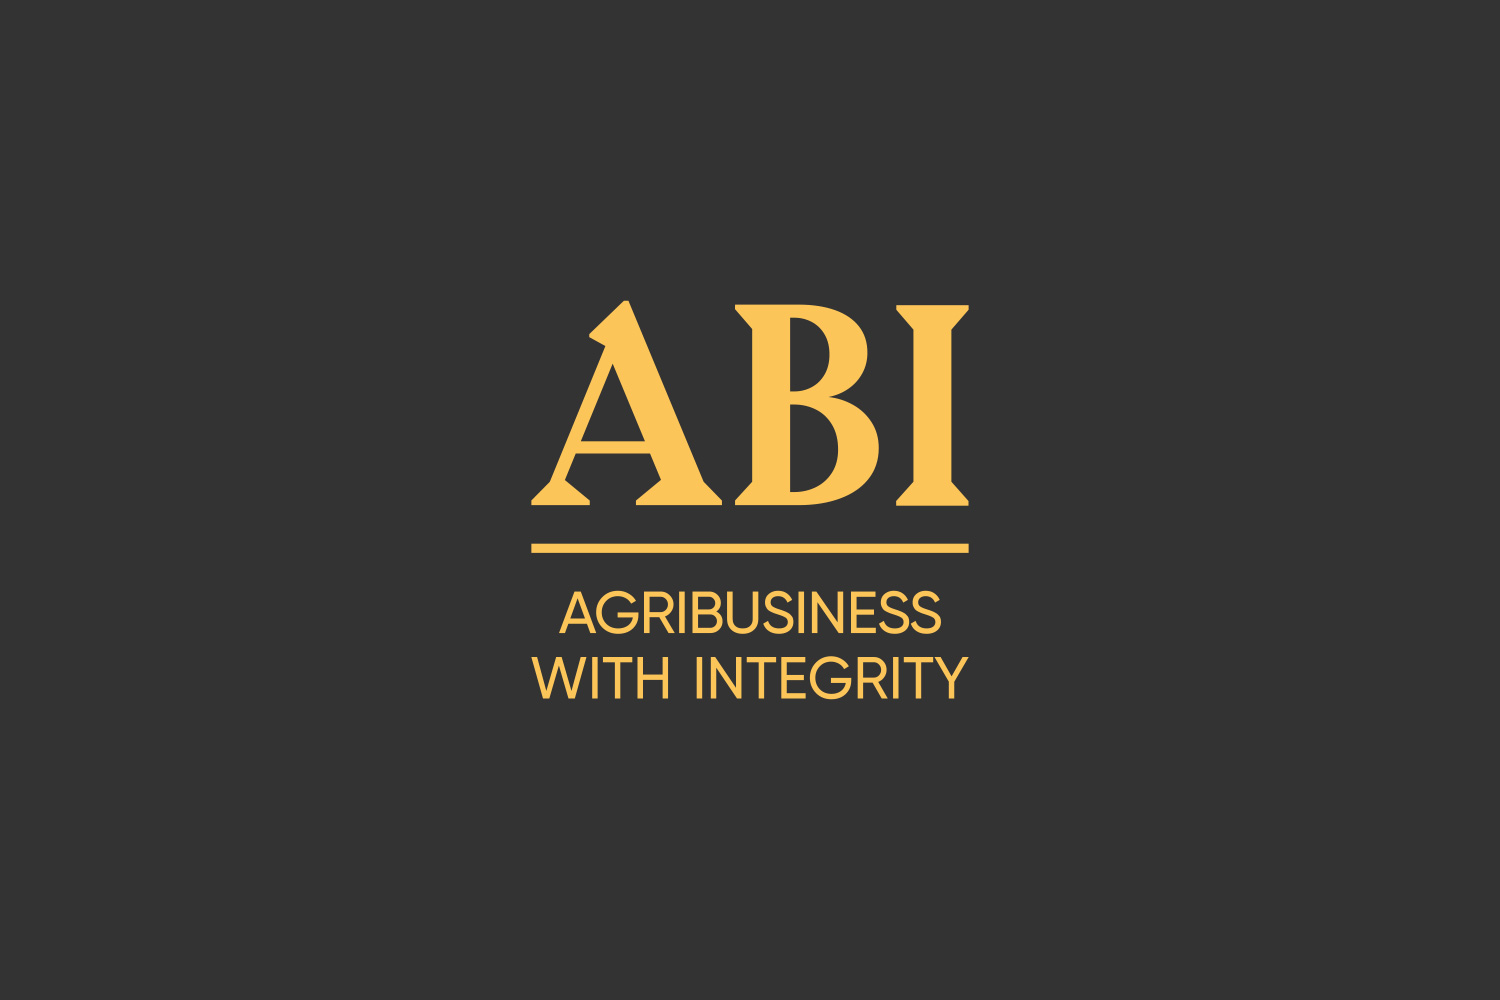 Abi now logo on black background